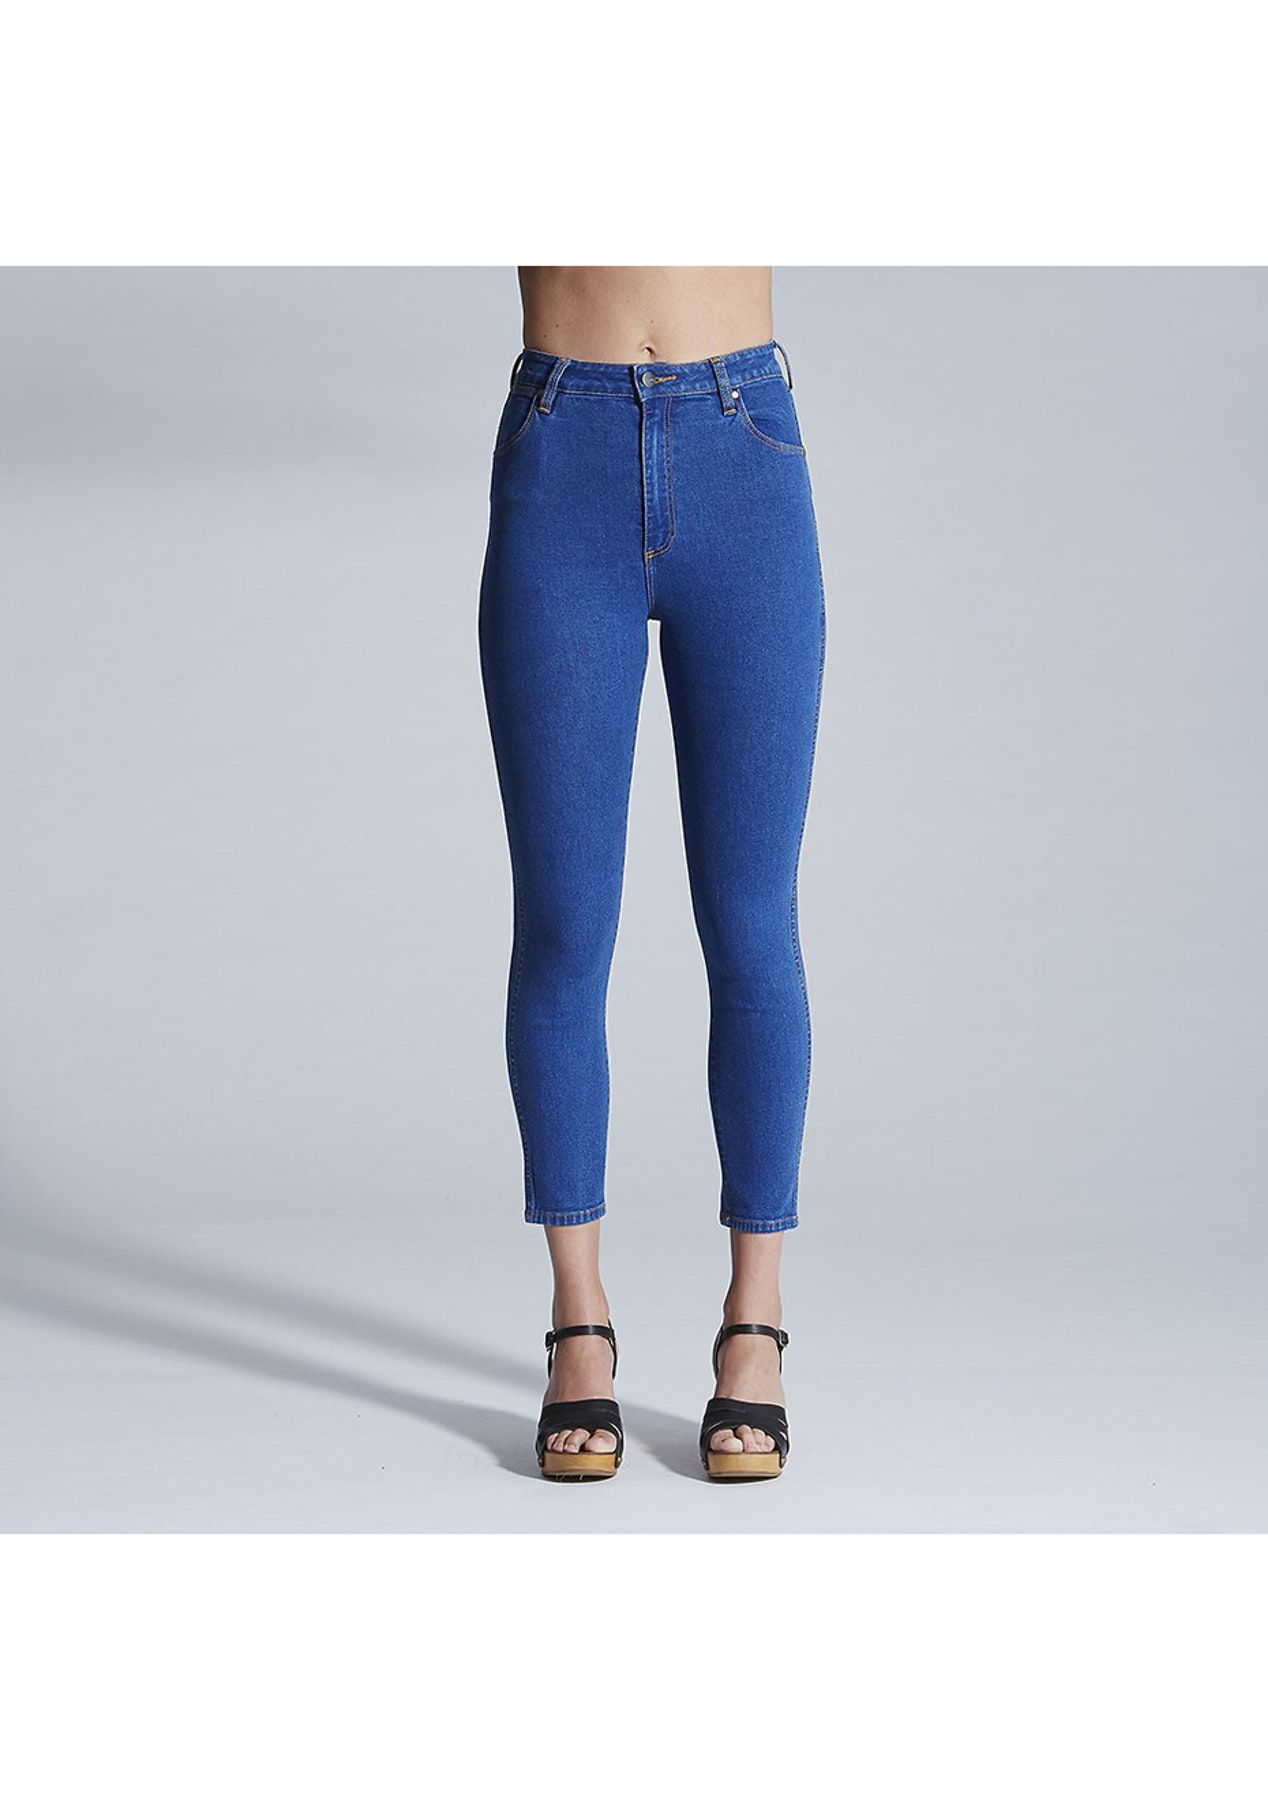 3957b4b790824e Wrangler Womens - Hi Pins Jean Cropped - Rizzo blue - Fashion from  1 -  Onceit